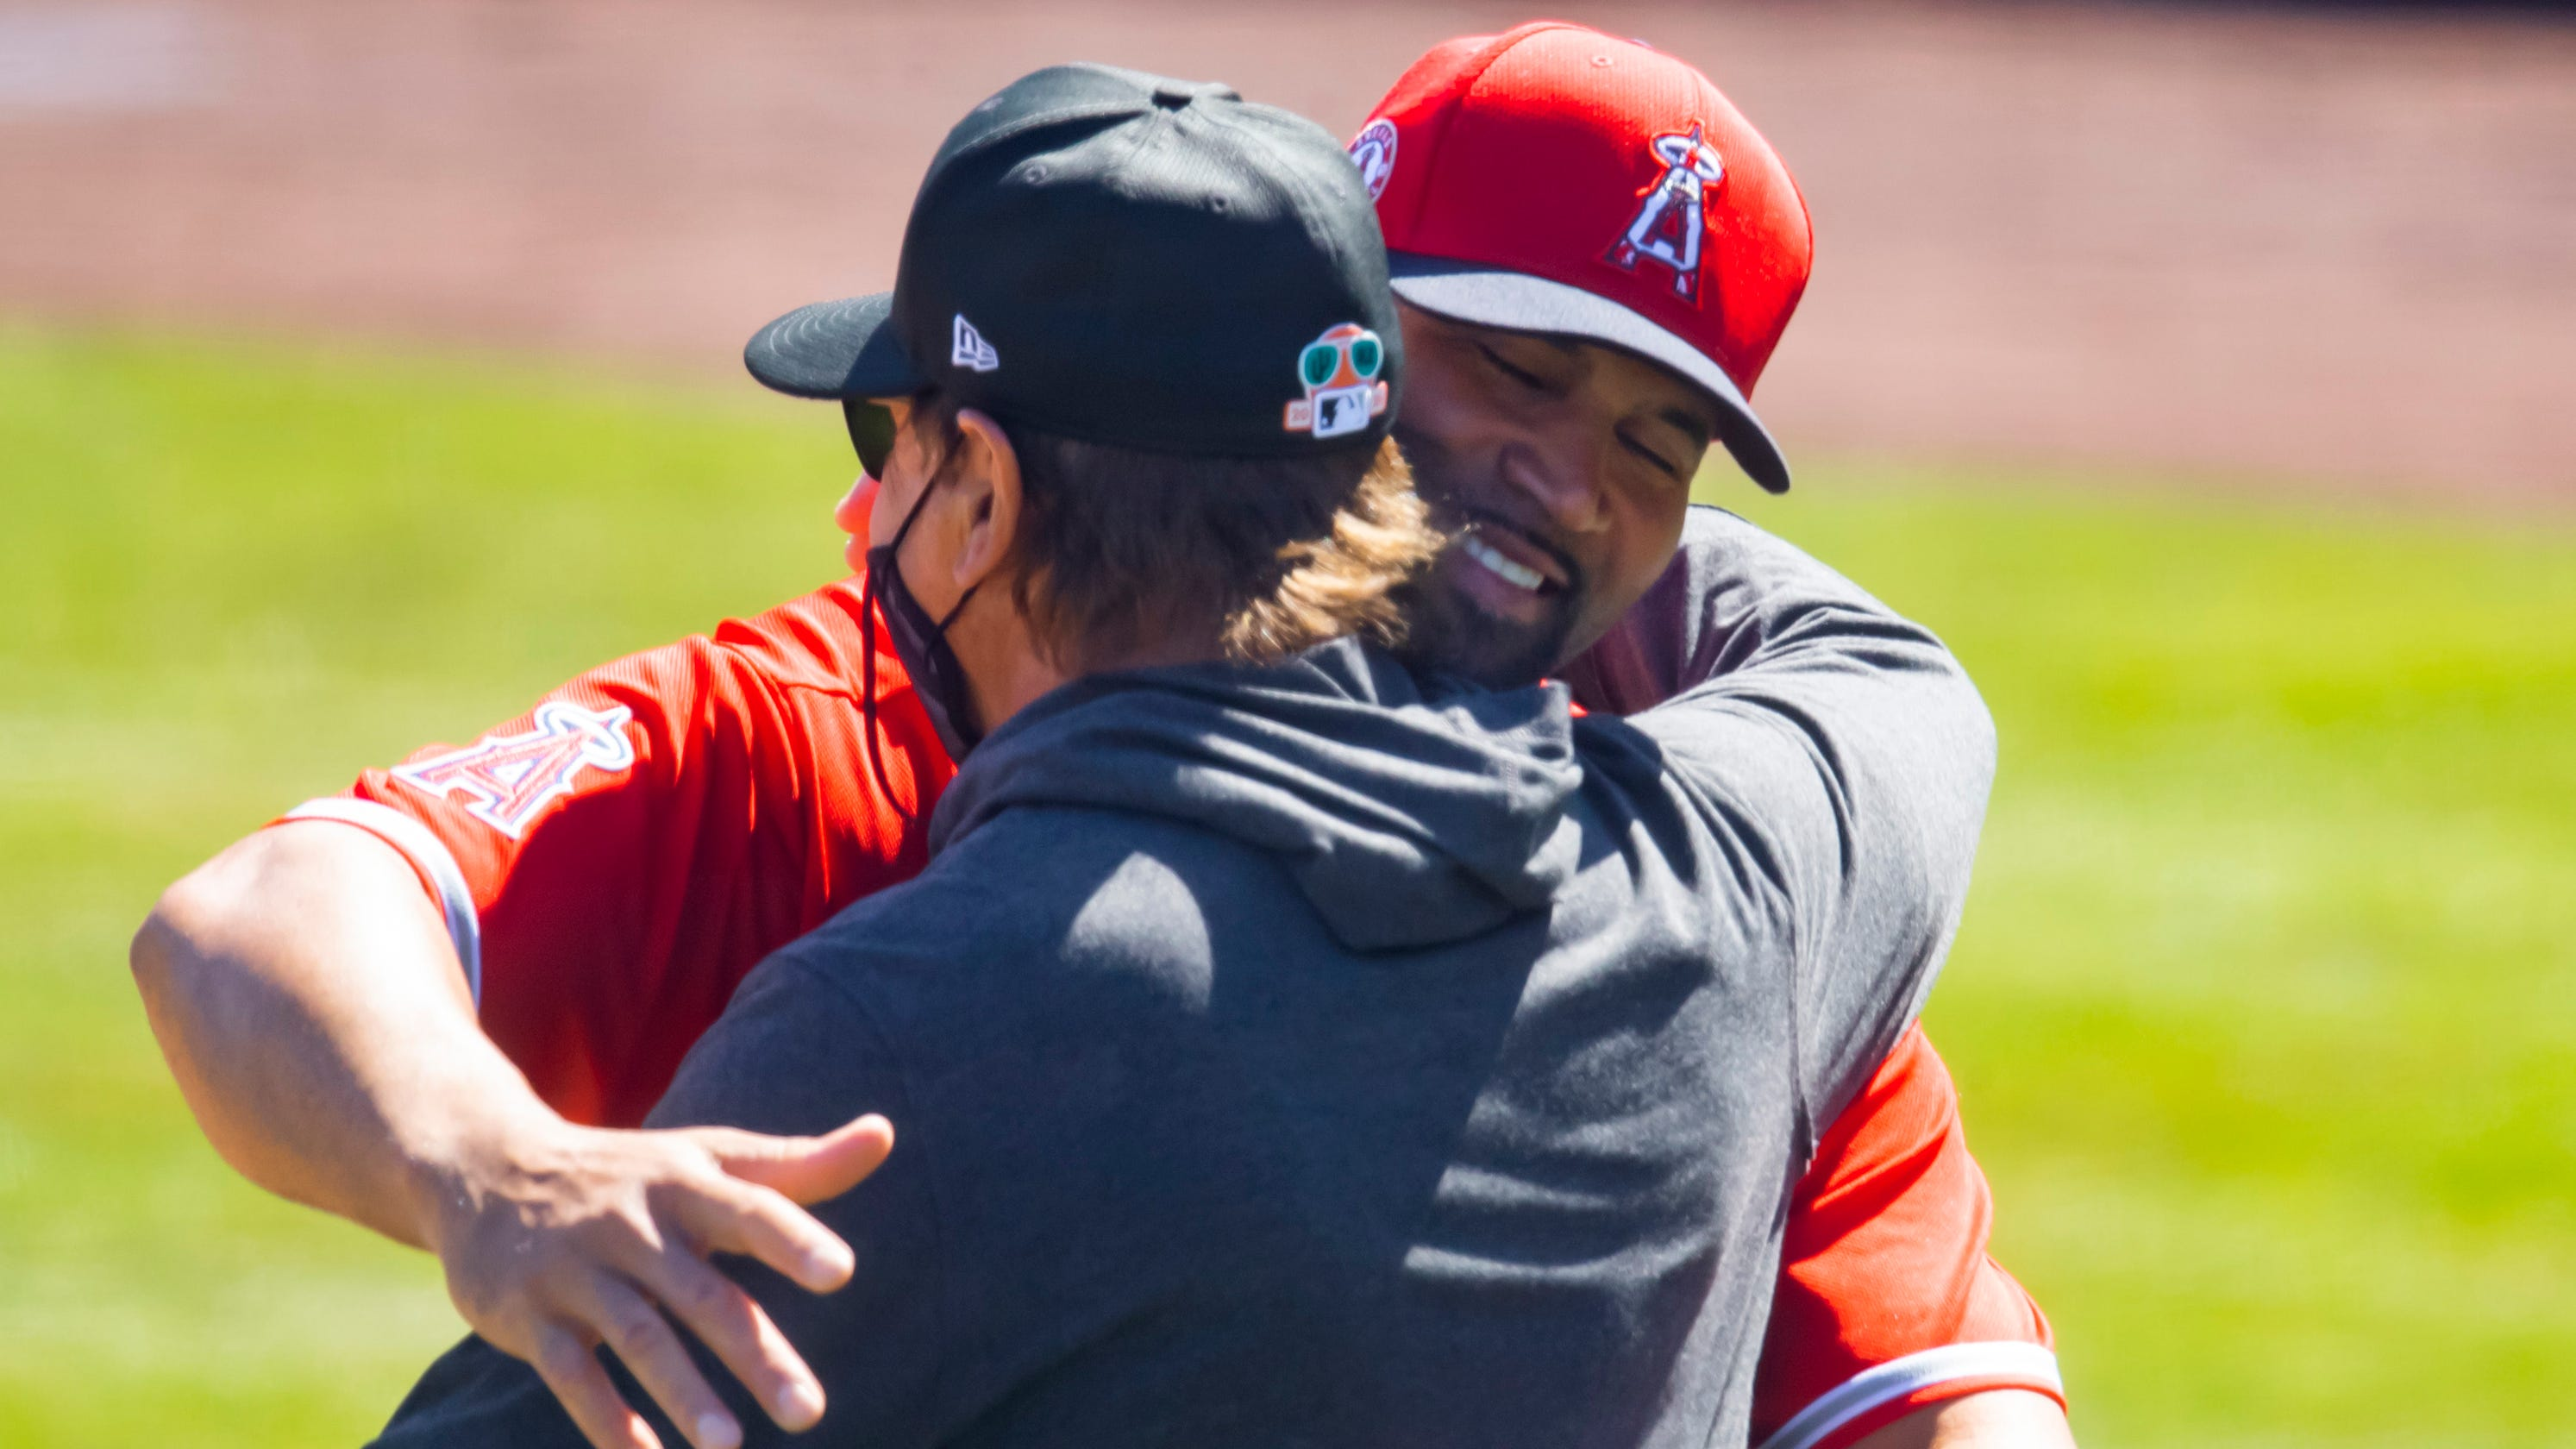 White Sox manager Tony La Russa says of potential reunion with Albert Pujols: 'There is no fit'